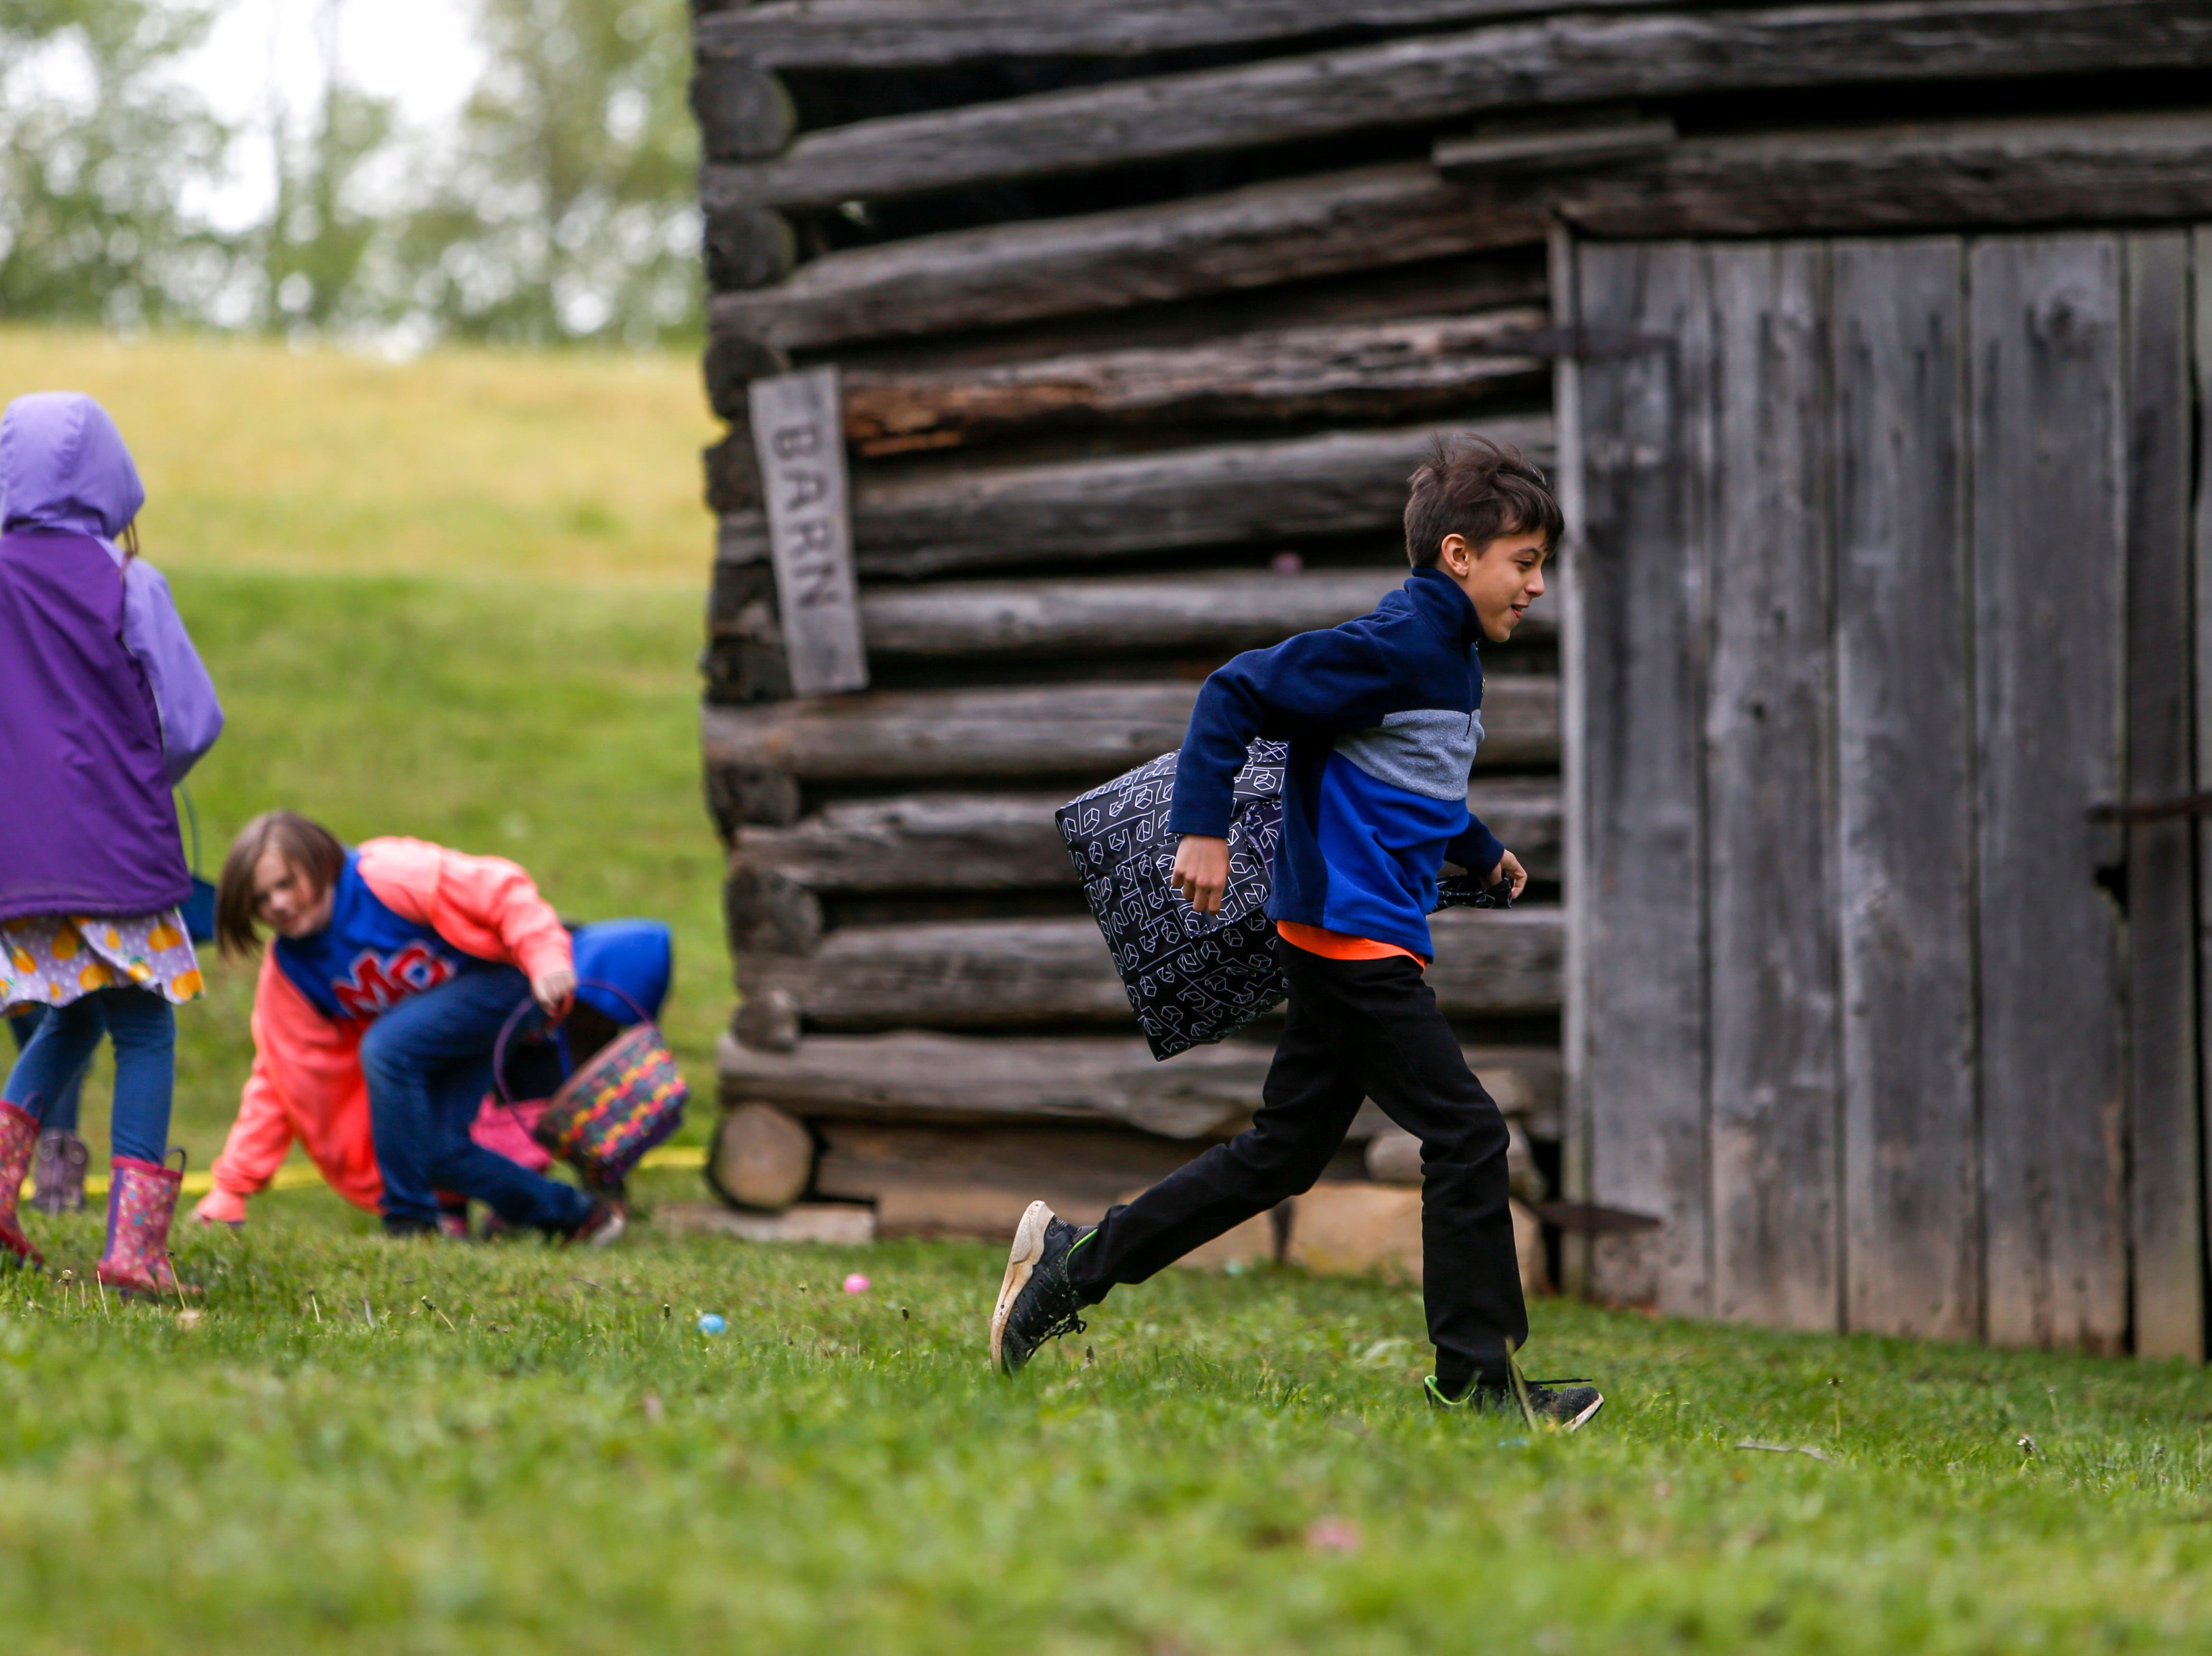 Egg hunters sprint into action in search of eggs at the annual Easter egg hunts at Historic Collinsville in Clarksville, Tenn., on Saturday, April 20, 2019.